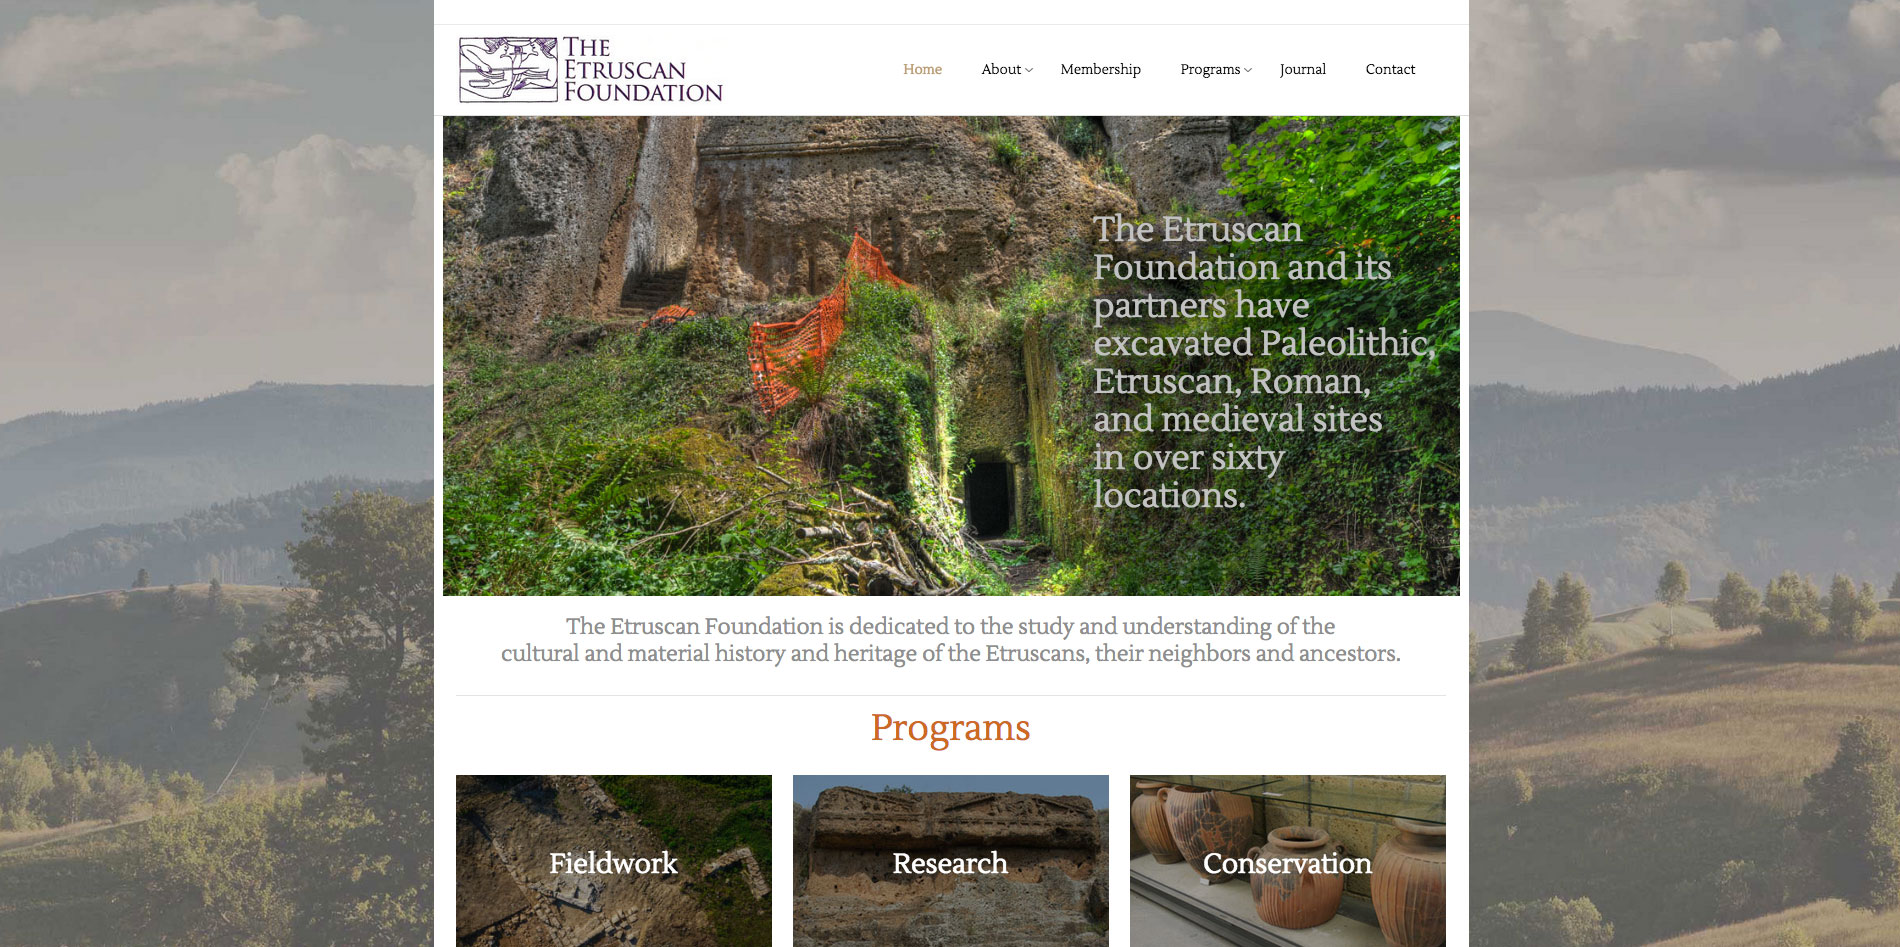 Website design home page 3 for Etruscan Foundation